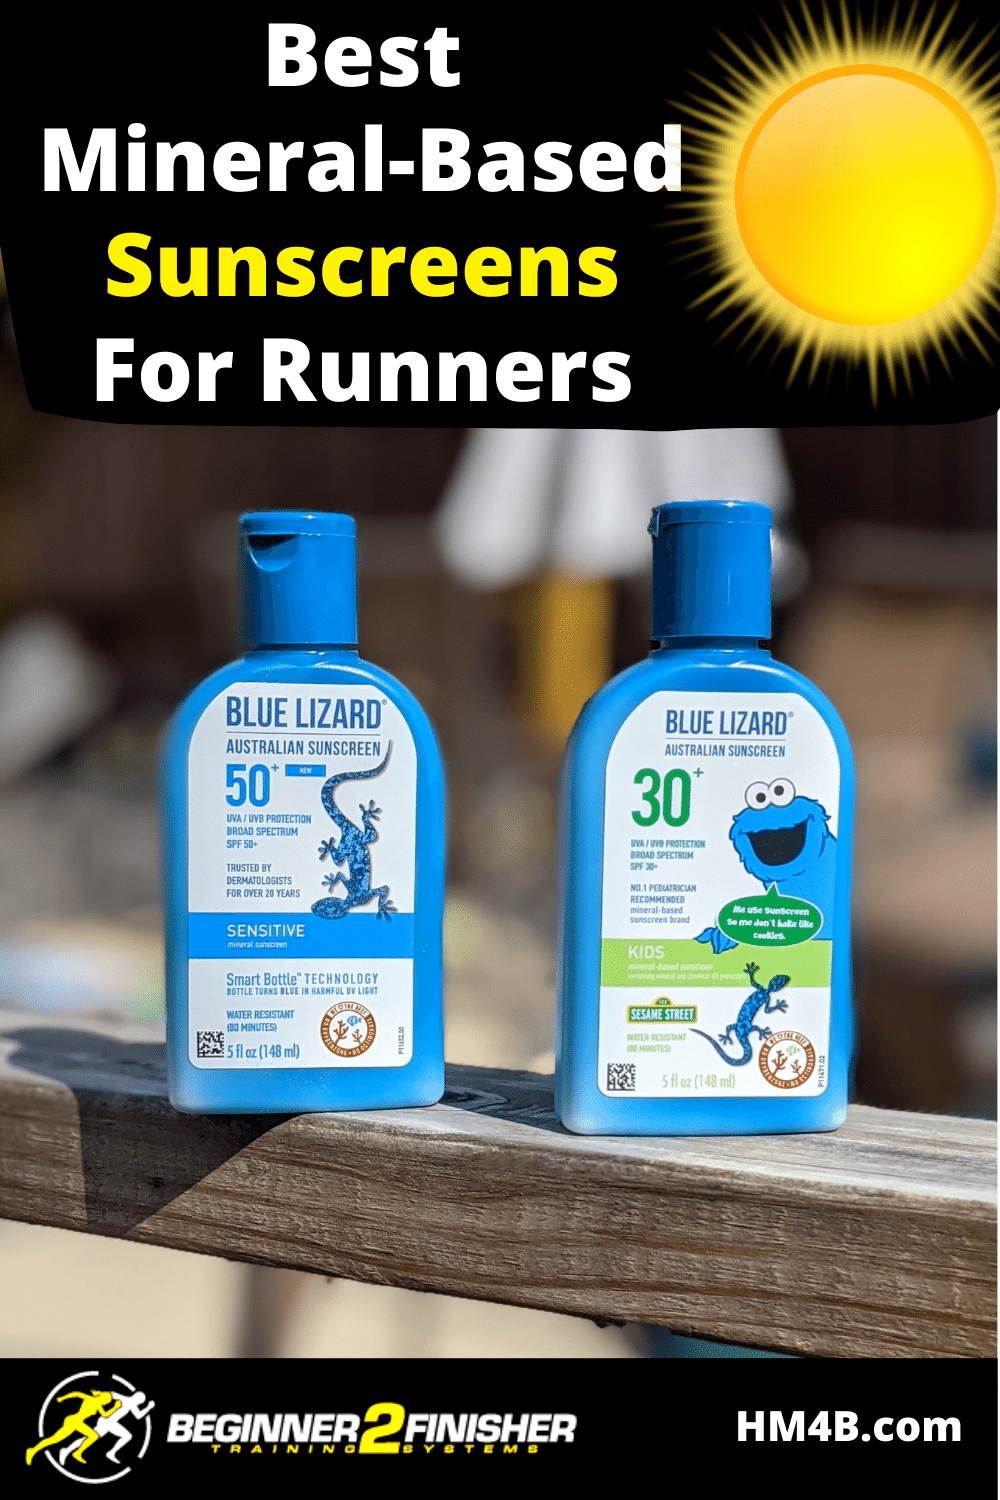 2021 Best Mineral-Based Sunscreens For Runners